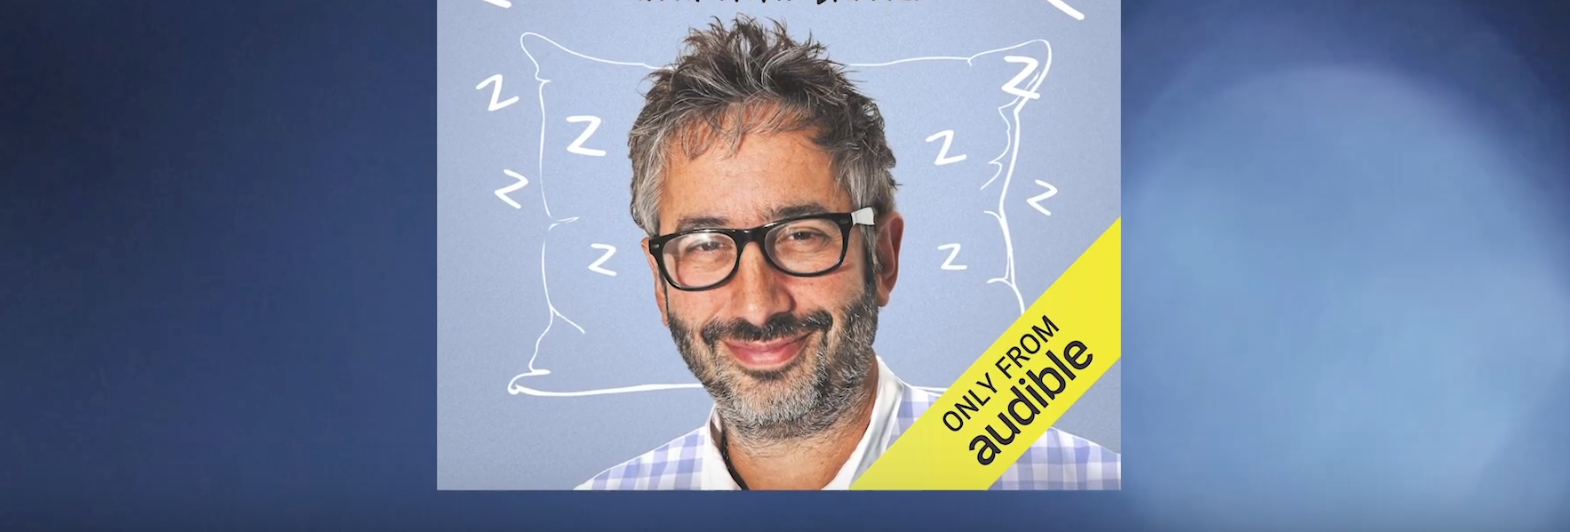 "David Baddiel Chats About His Podcast ""Sleeping With David Baddiel"" With Audible"